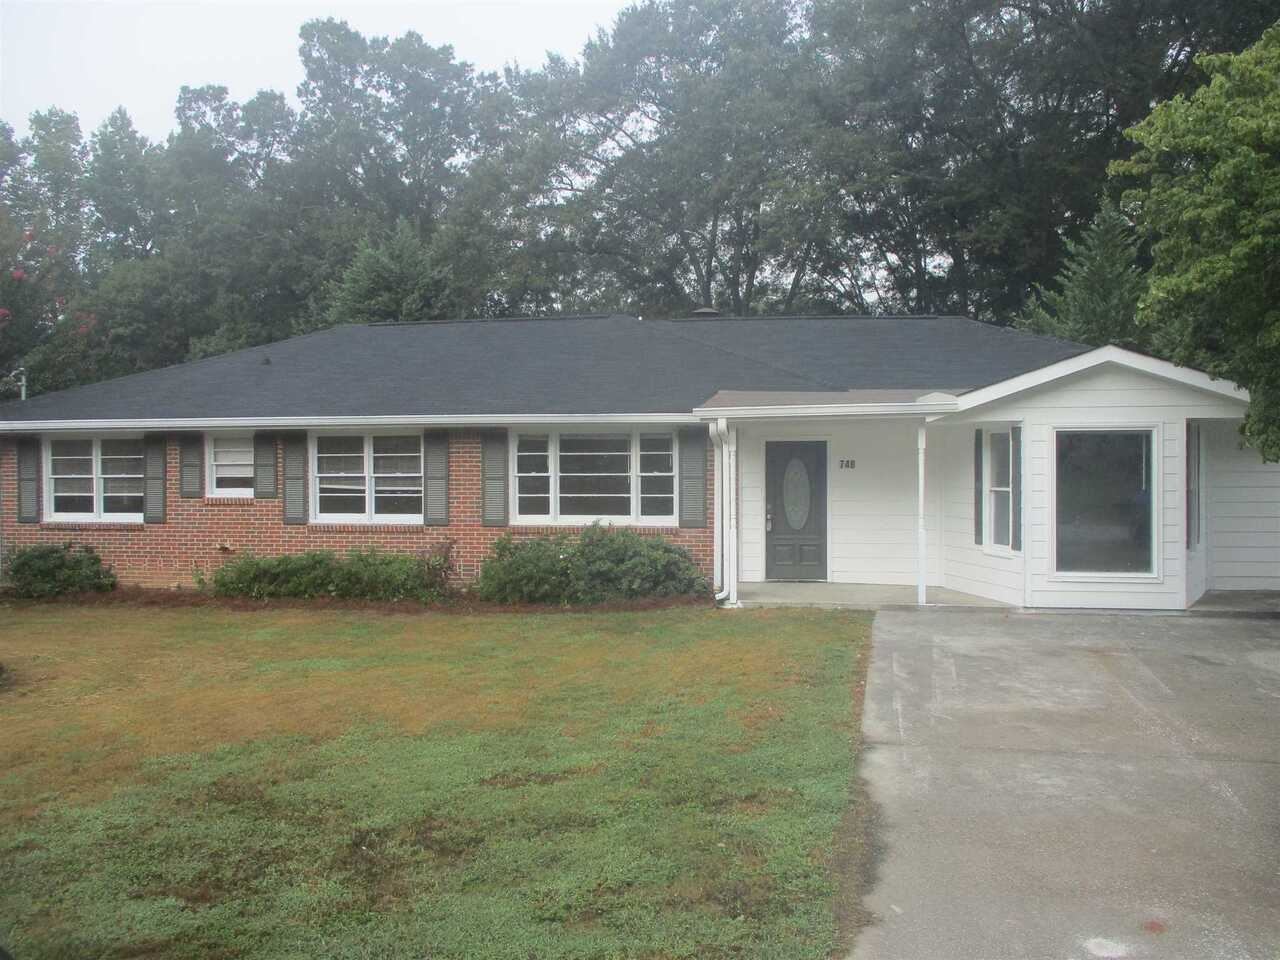 748 Greenhill, Conyers, GA 30012 - #: 8955556